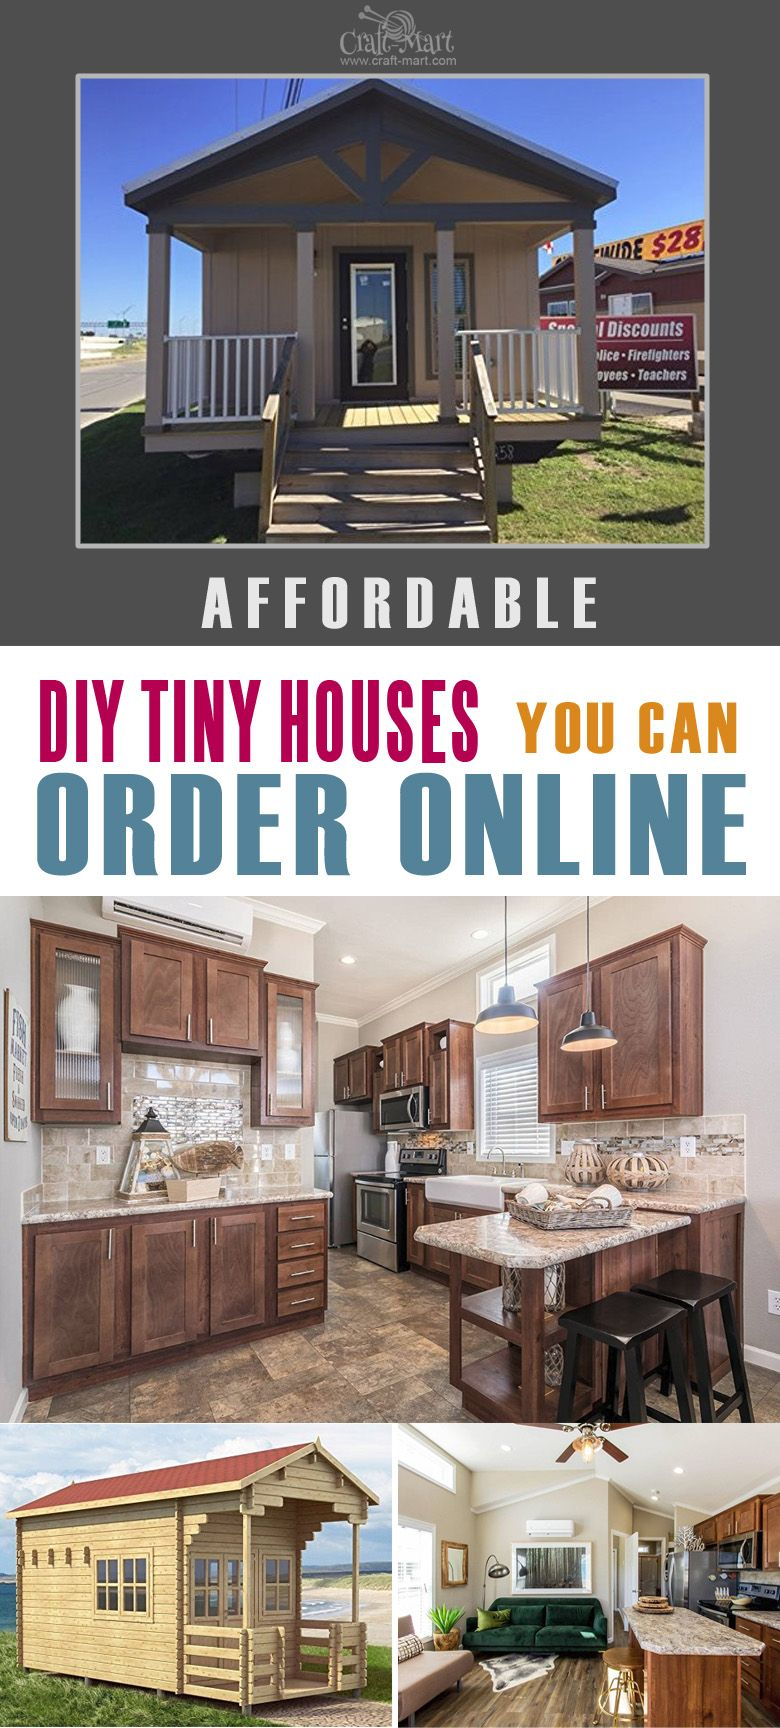 Design Tiny Home Online Awesome Home